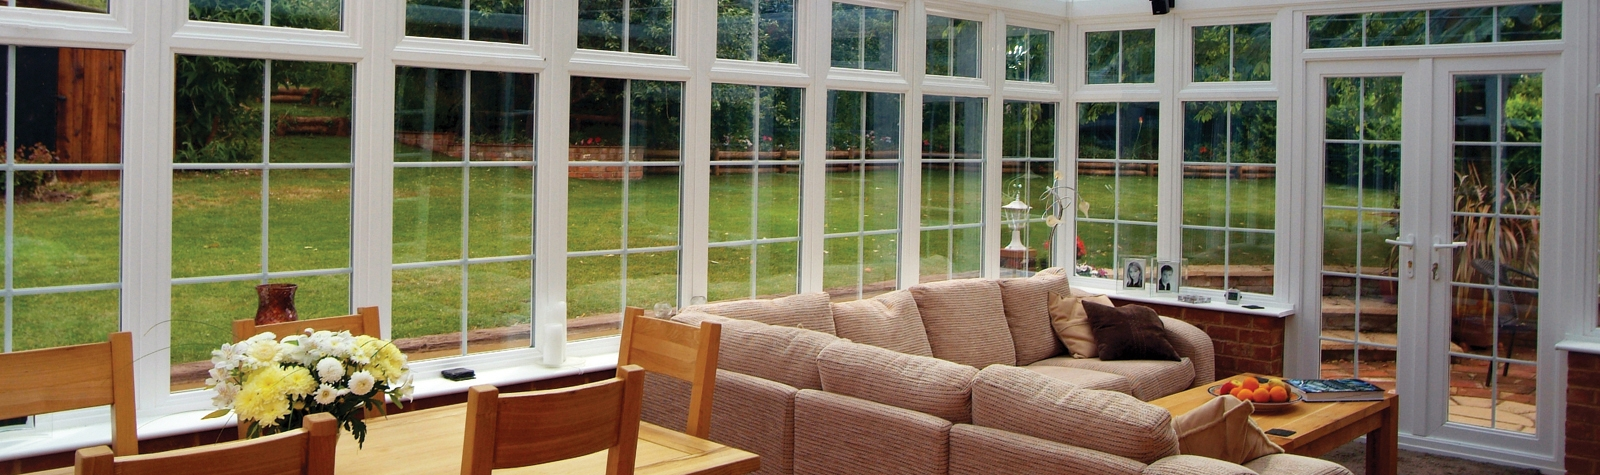 Sunroom roof quotes for Sunroom extensions sydney